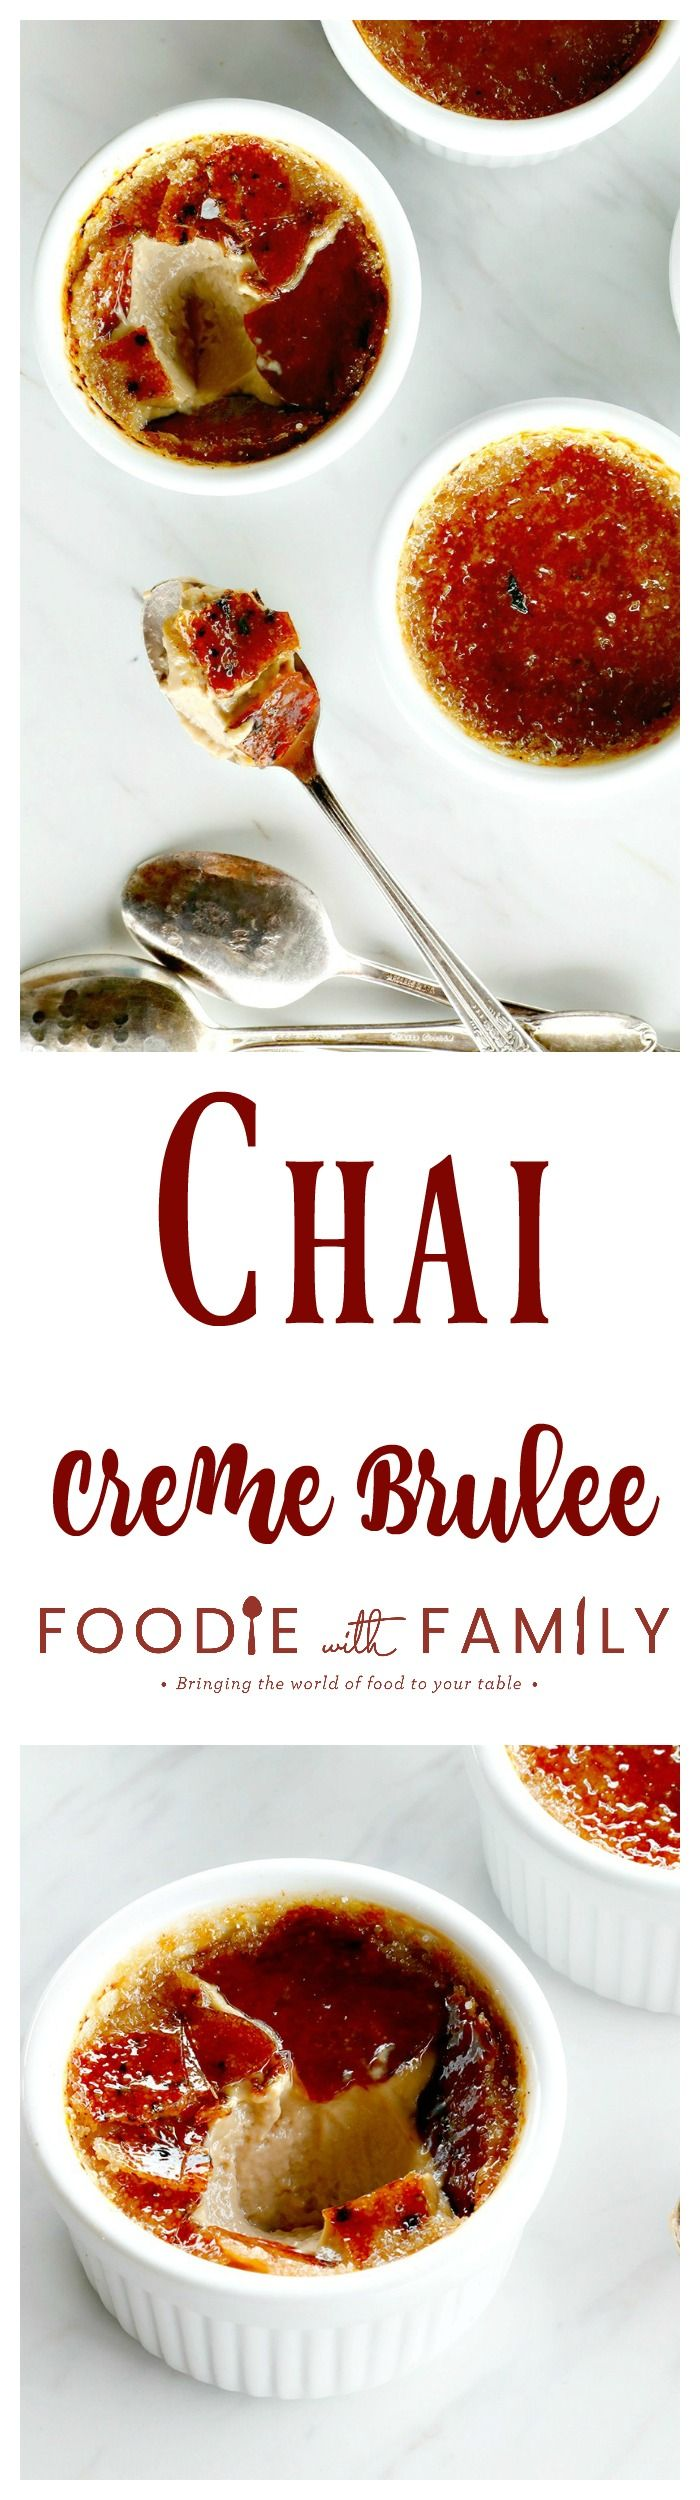 Chai Creme Brulee: the thin layer of crisp burnt-sugar caramel sits on top of a velvety and smooth custard redolent with cinnamon, nutmeg, cardamom, and other spices; it tastes just like a caramel chai latte. #ad #HorizonOrganic @Horizon_organic